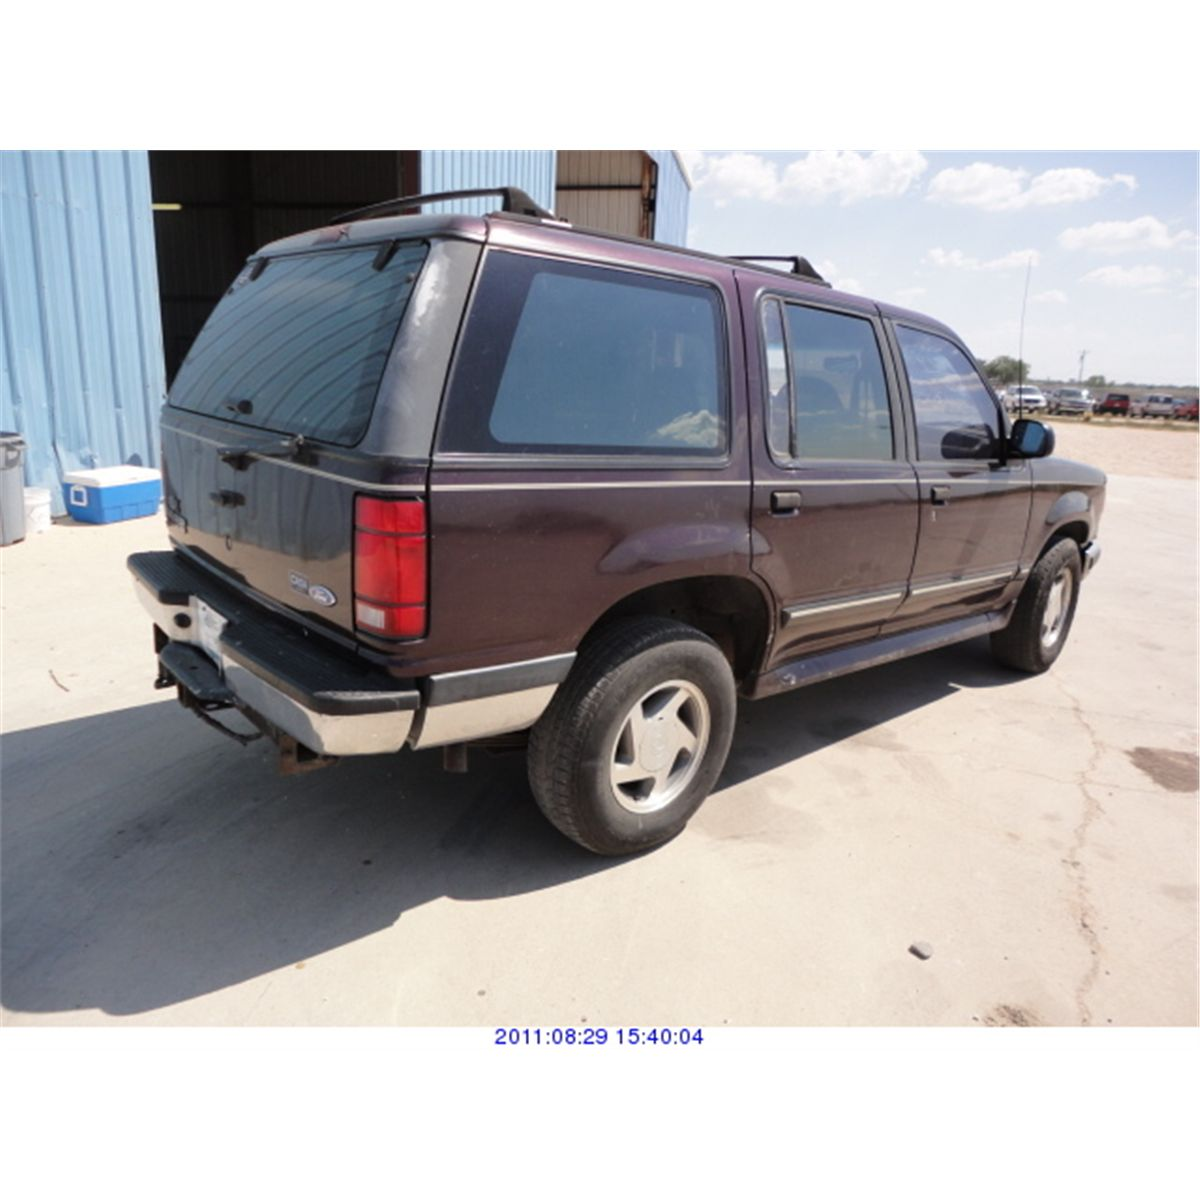 small resolution of  image 4 1994 ford explorer